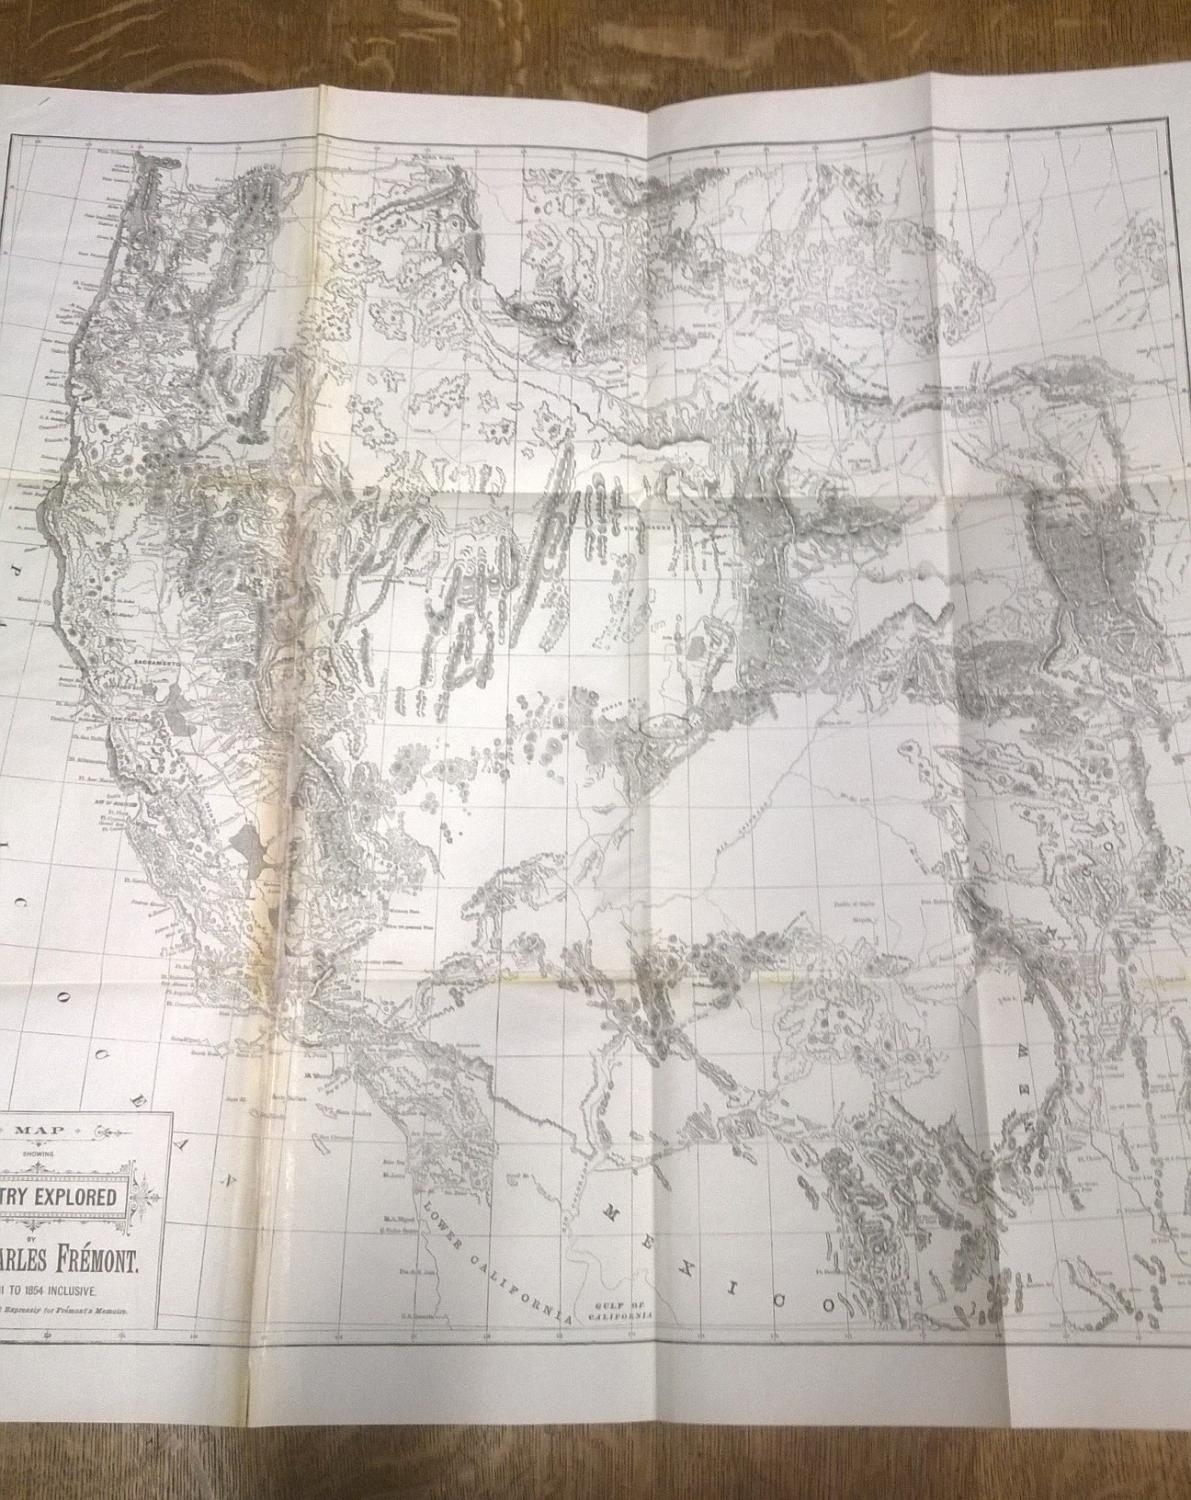 Map showing country explored by john charles fremont 1841 1854 map showing country explored by john charles fremont 1841 1854 inclusive excised from memoirs gumiabroncs Gallery